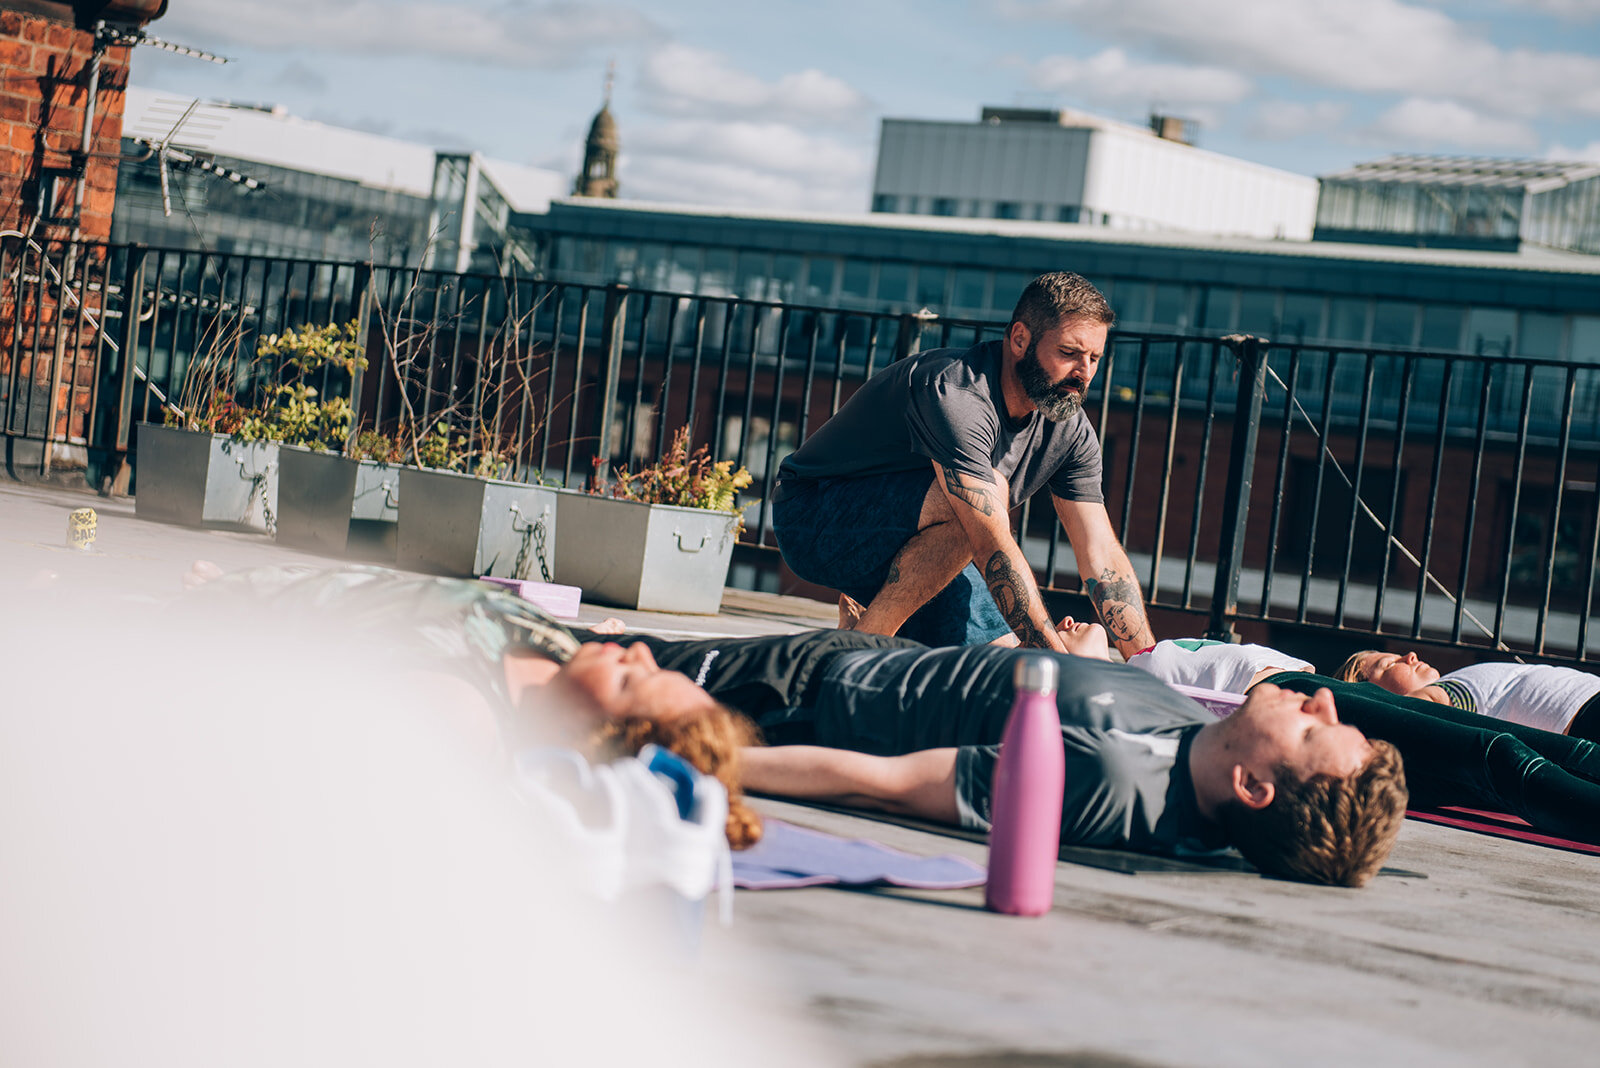 Founder Borja at our Let's get it Om! Festival rooftop stretch.